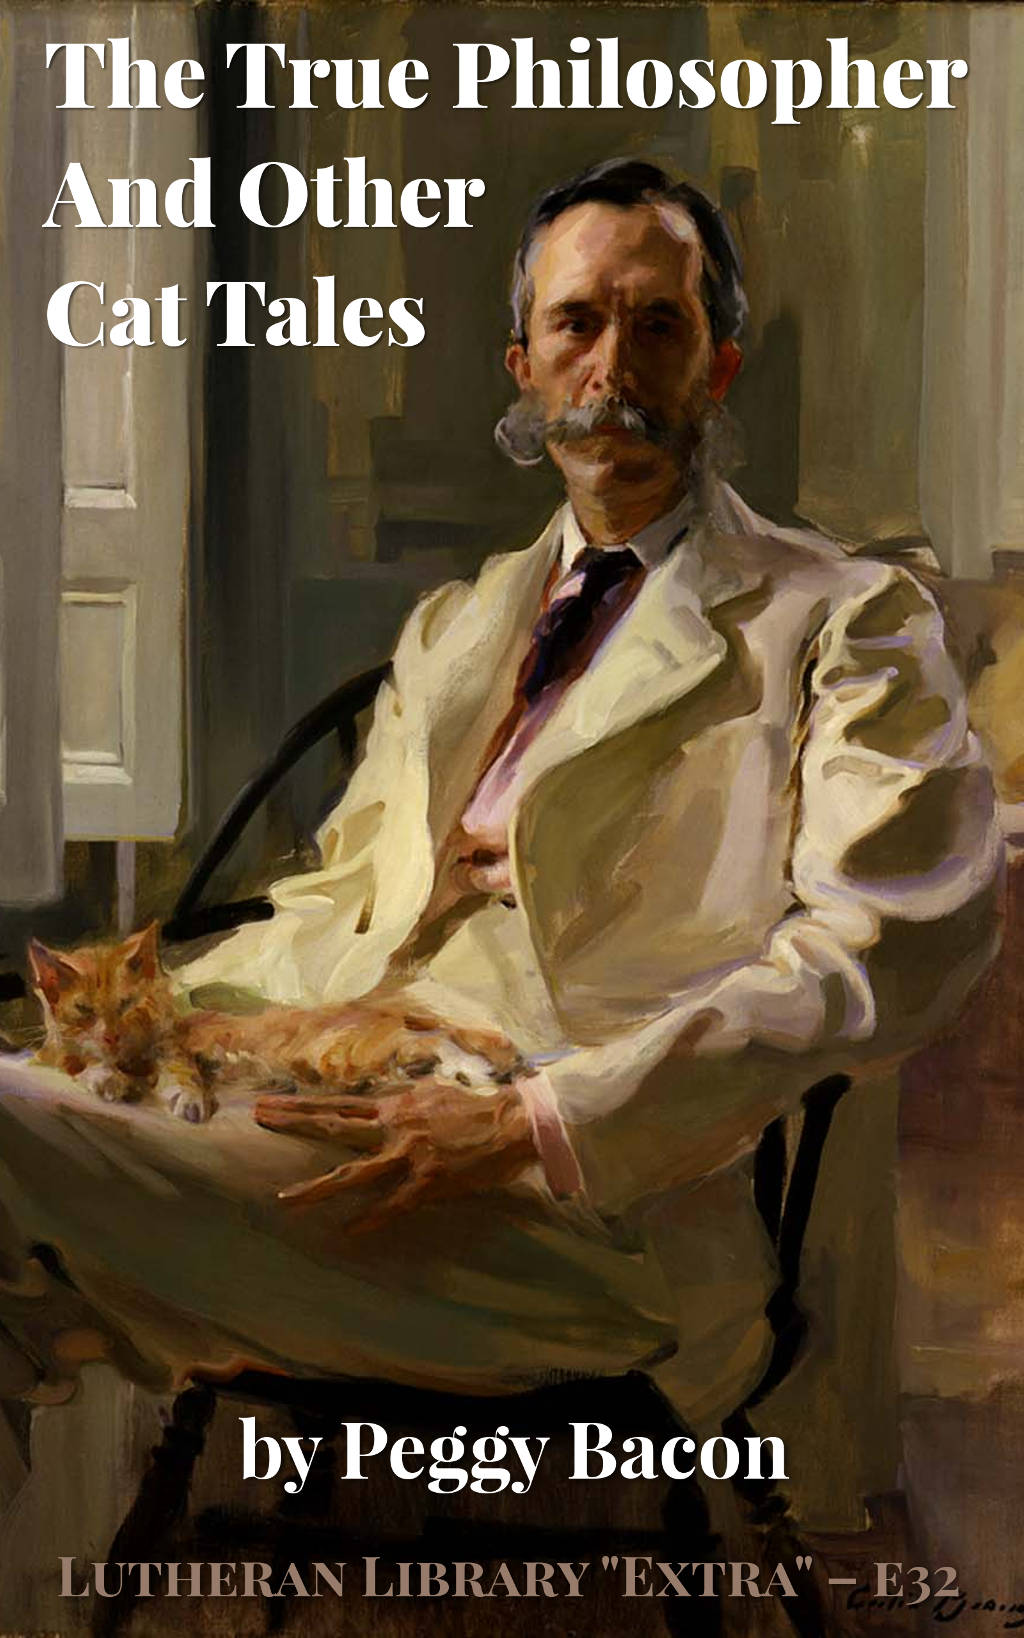 The true philosopher and other cat tales by Peggy Bacon